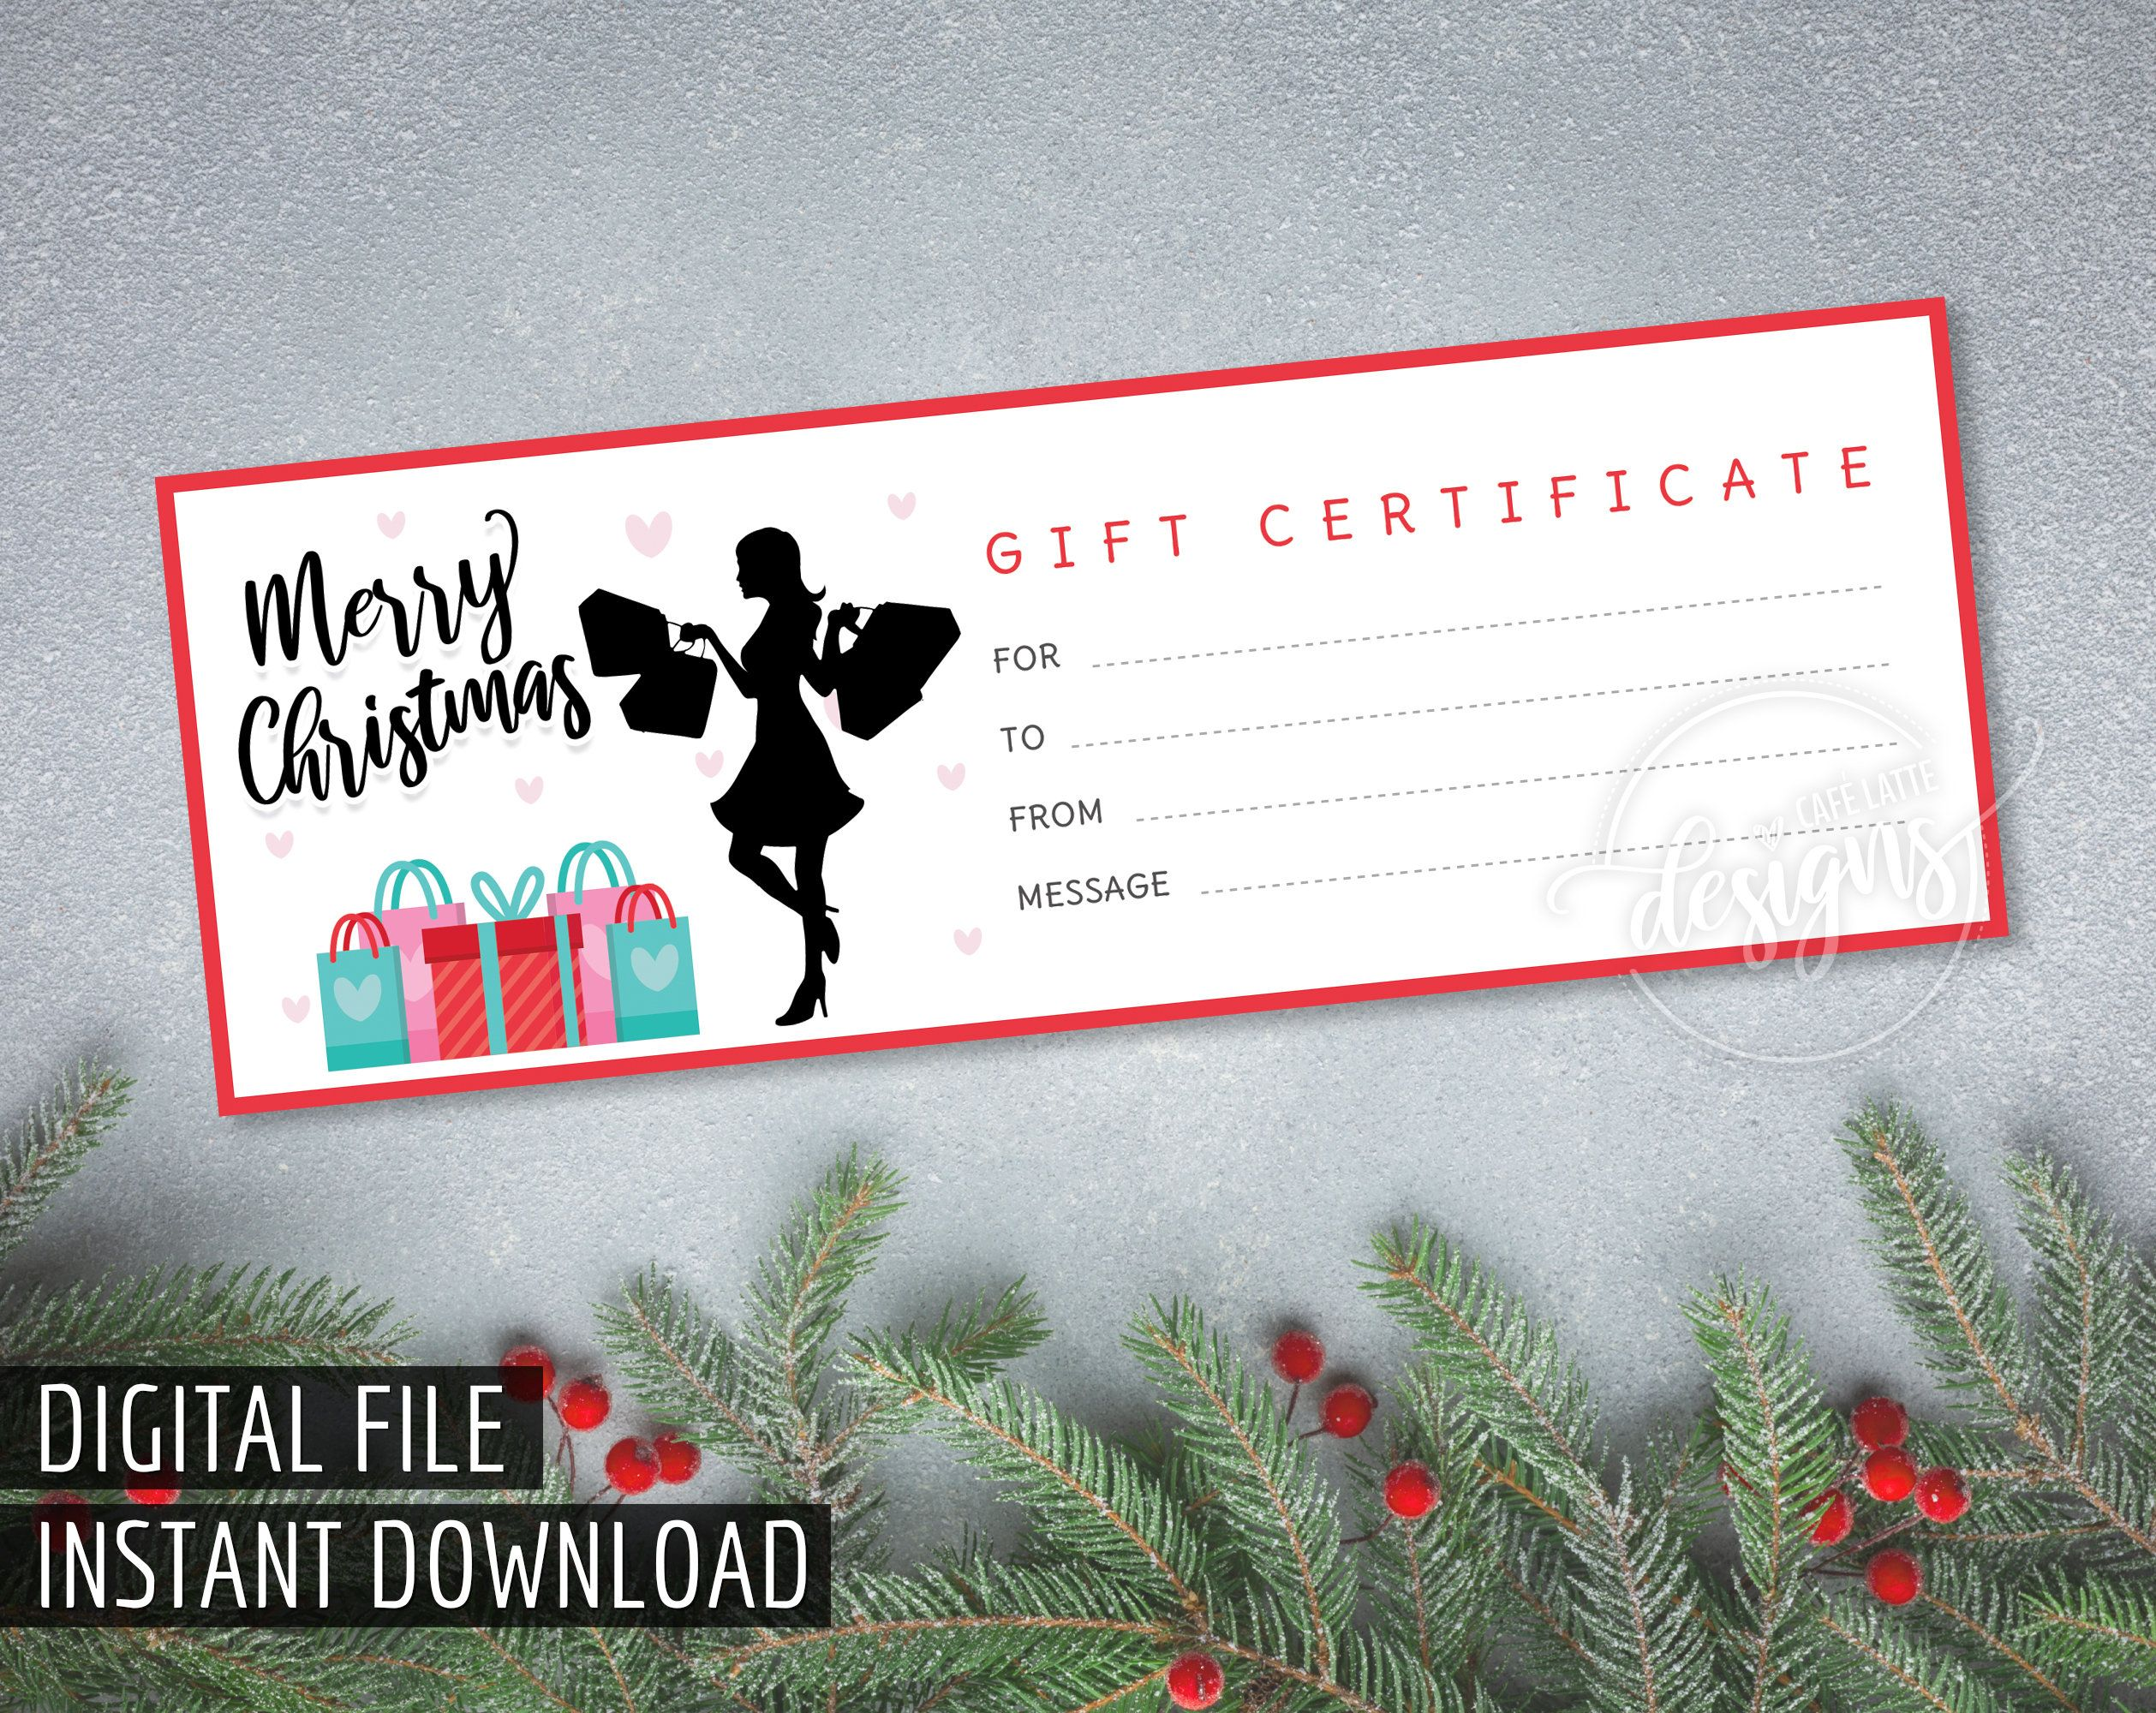 Christmas gift certificate printable gift certificate